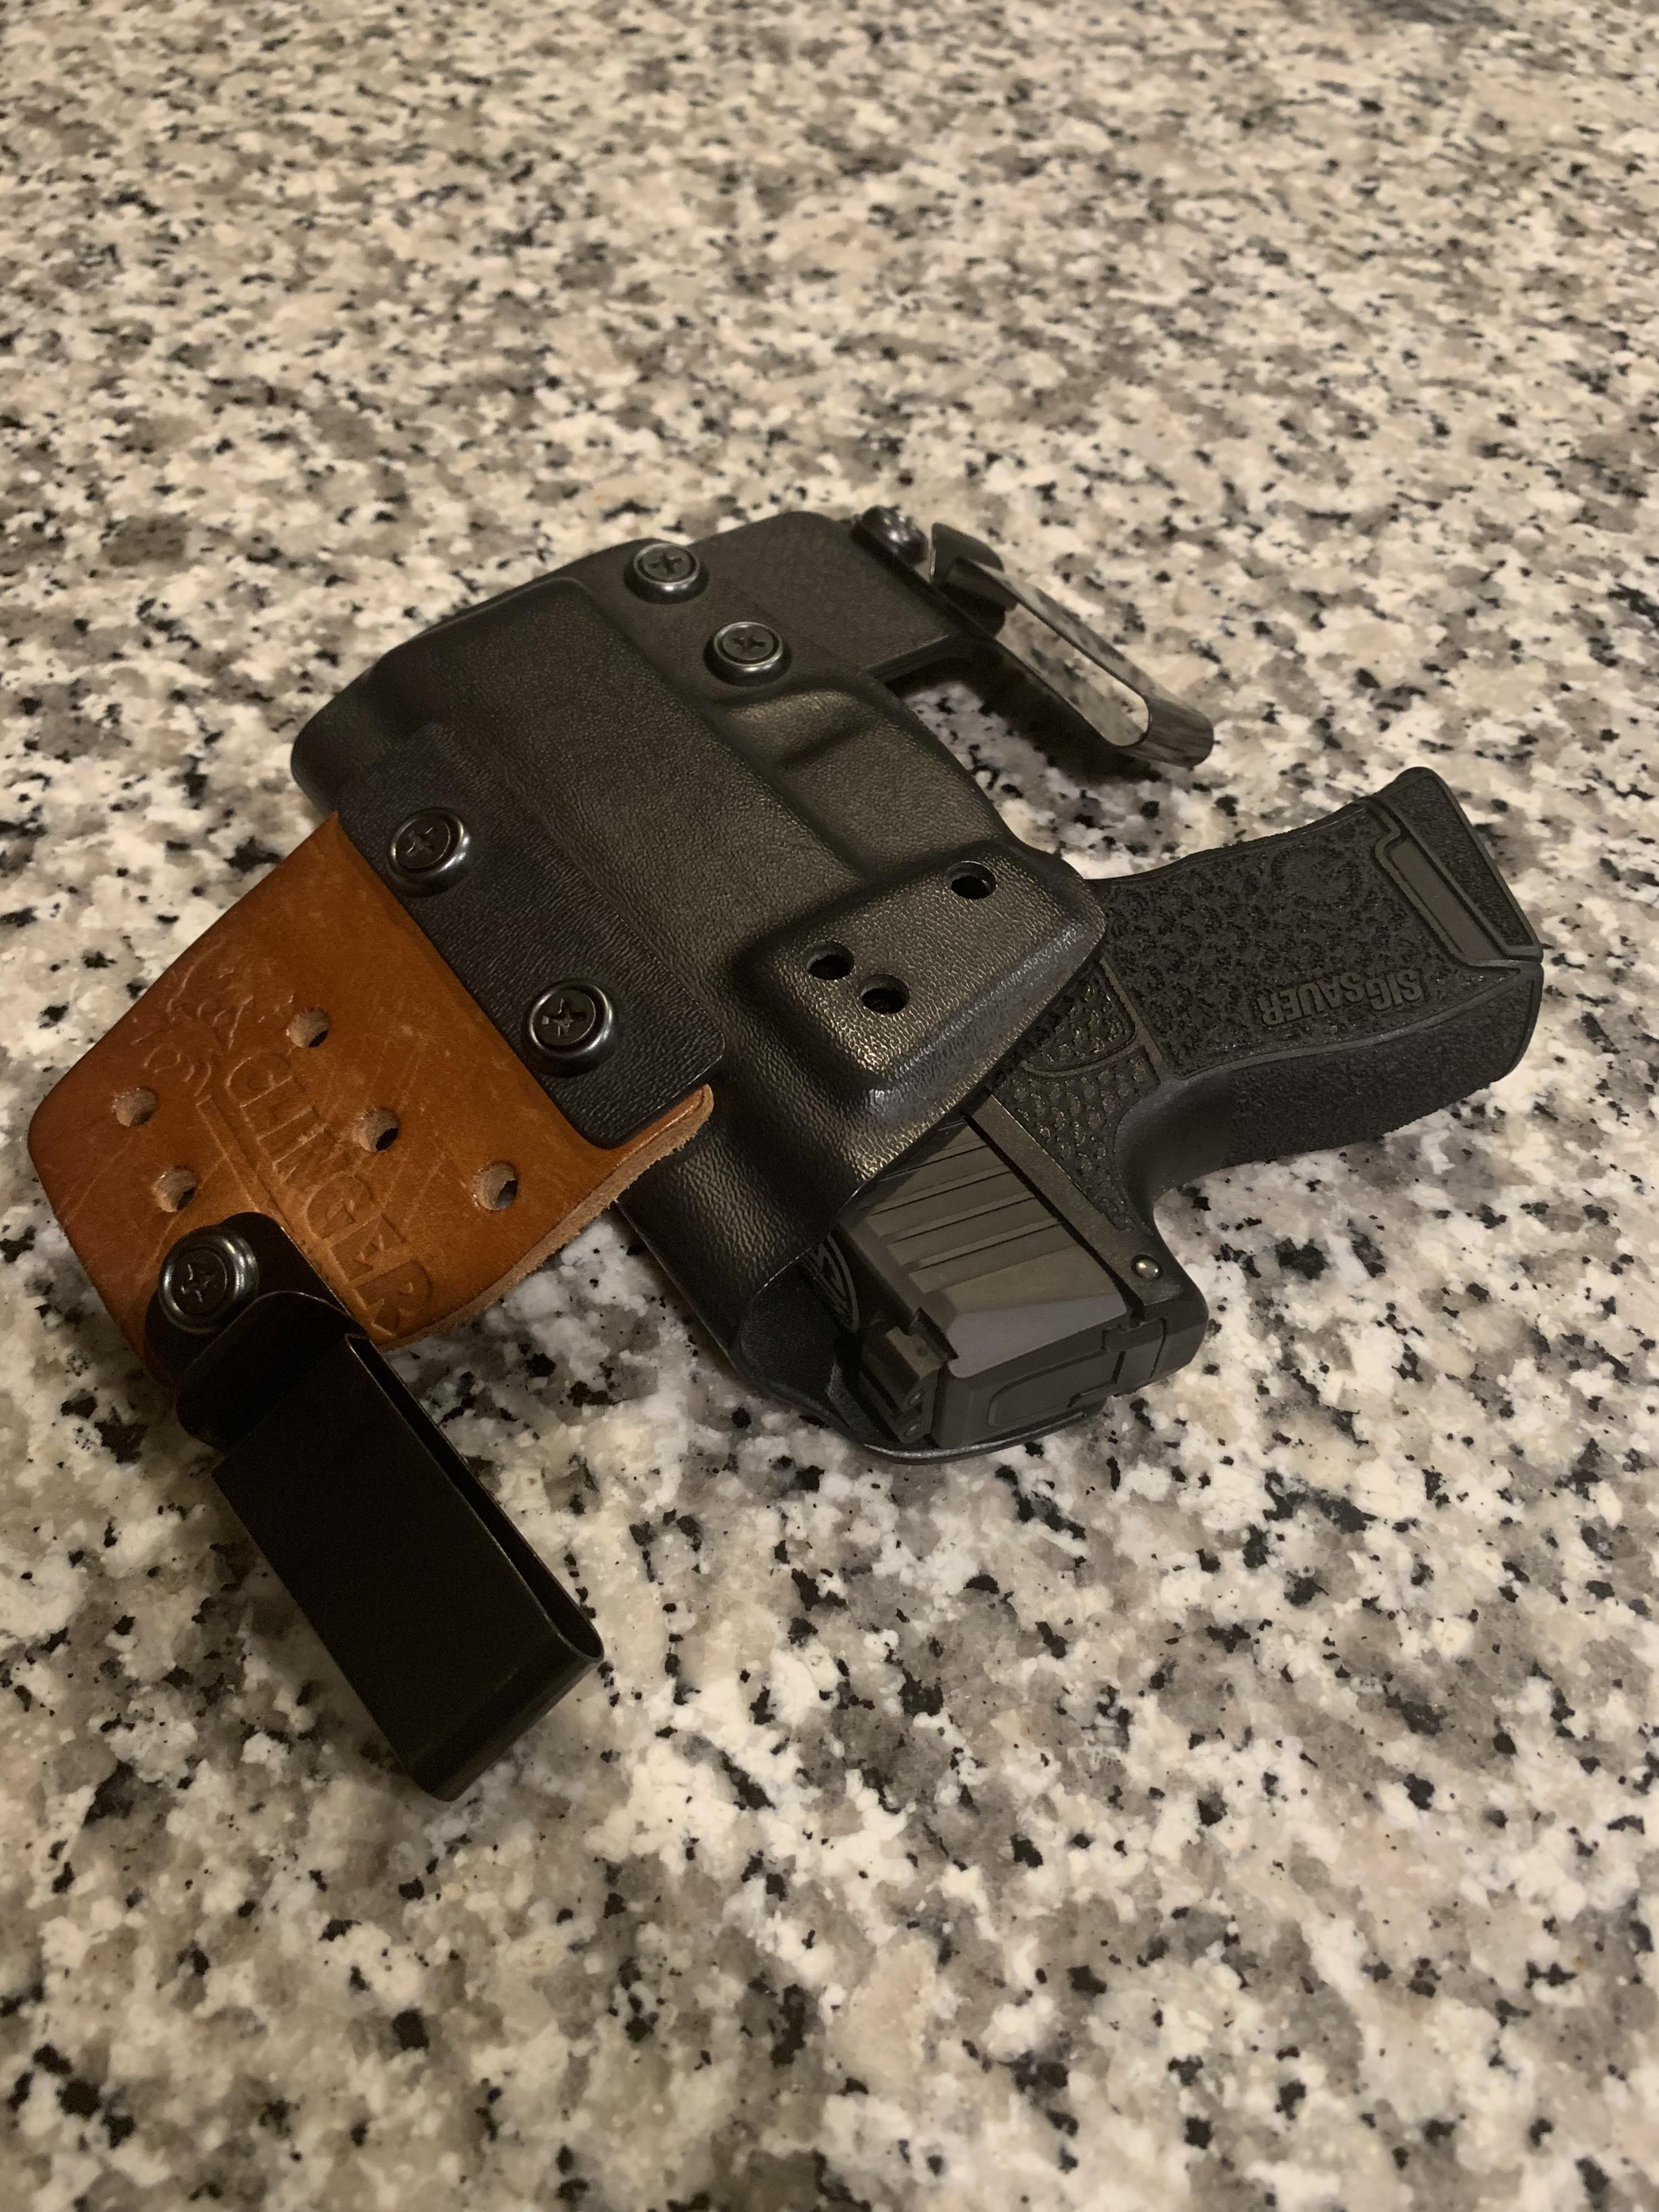 Clinger Holsters: Great Product-img_4593.jpg